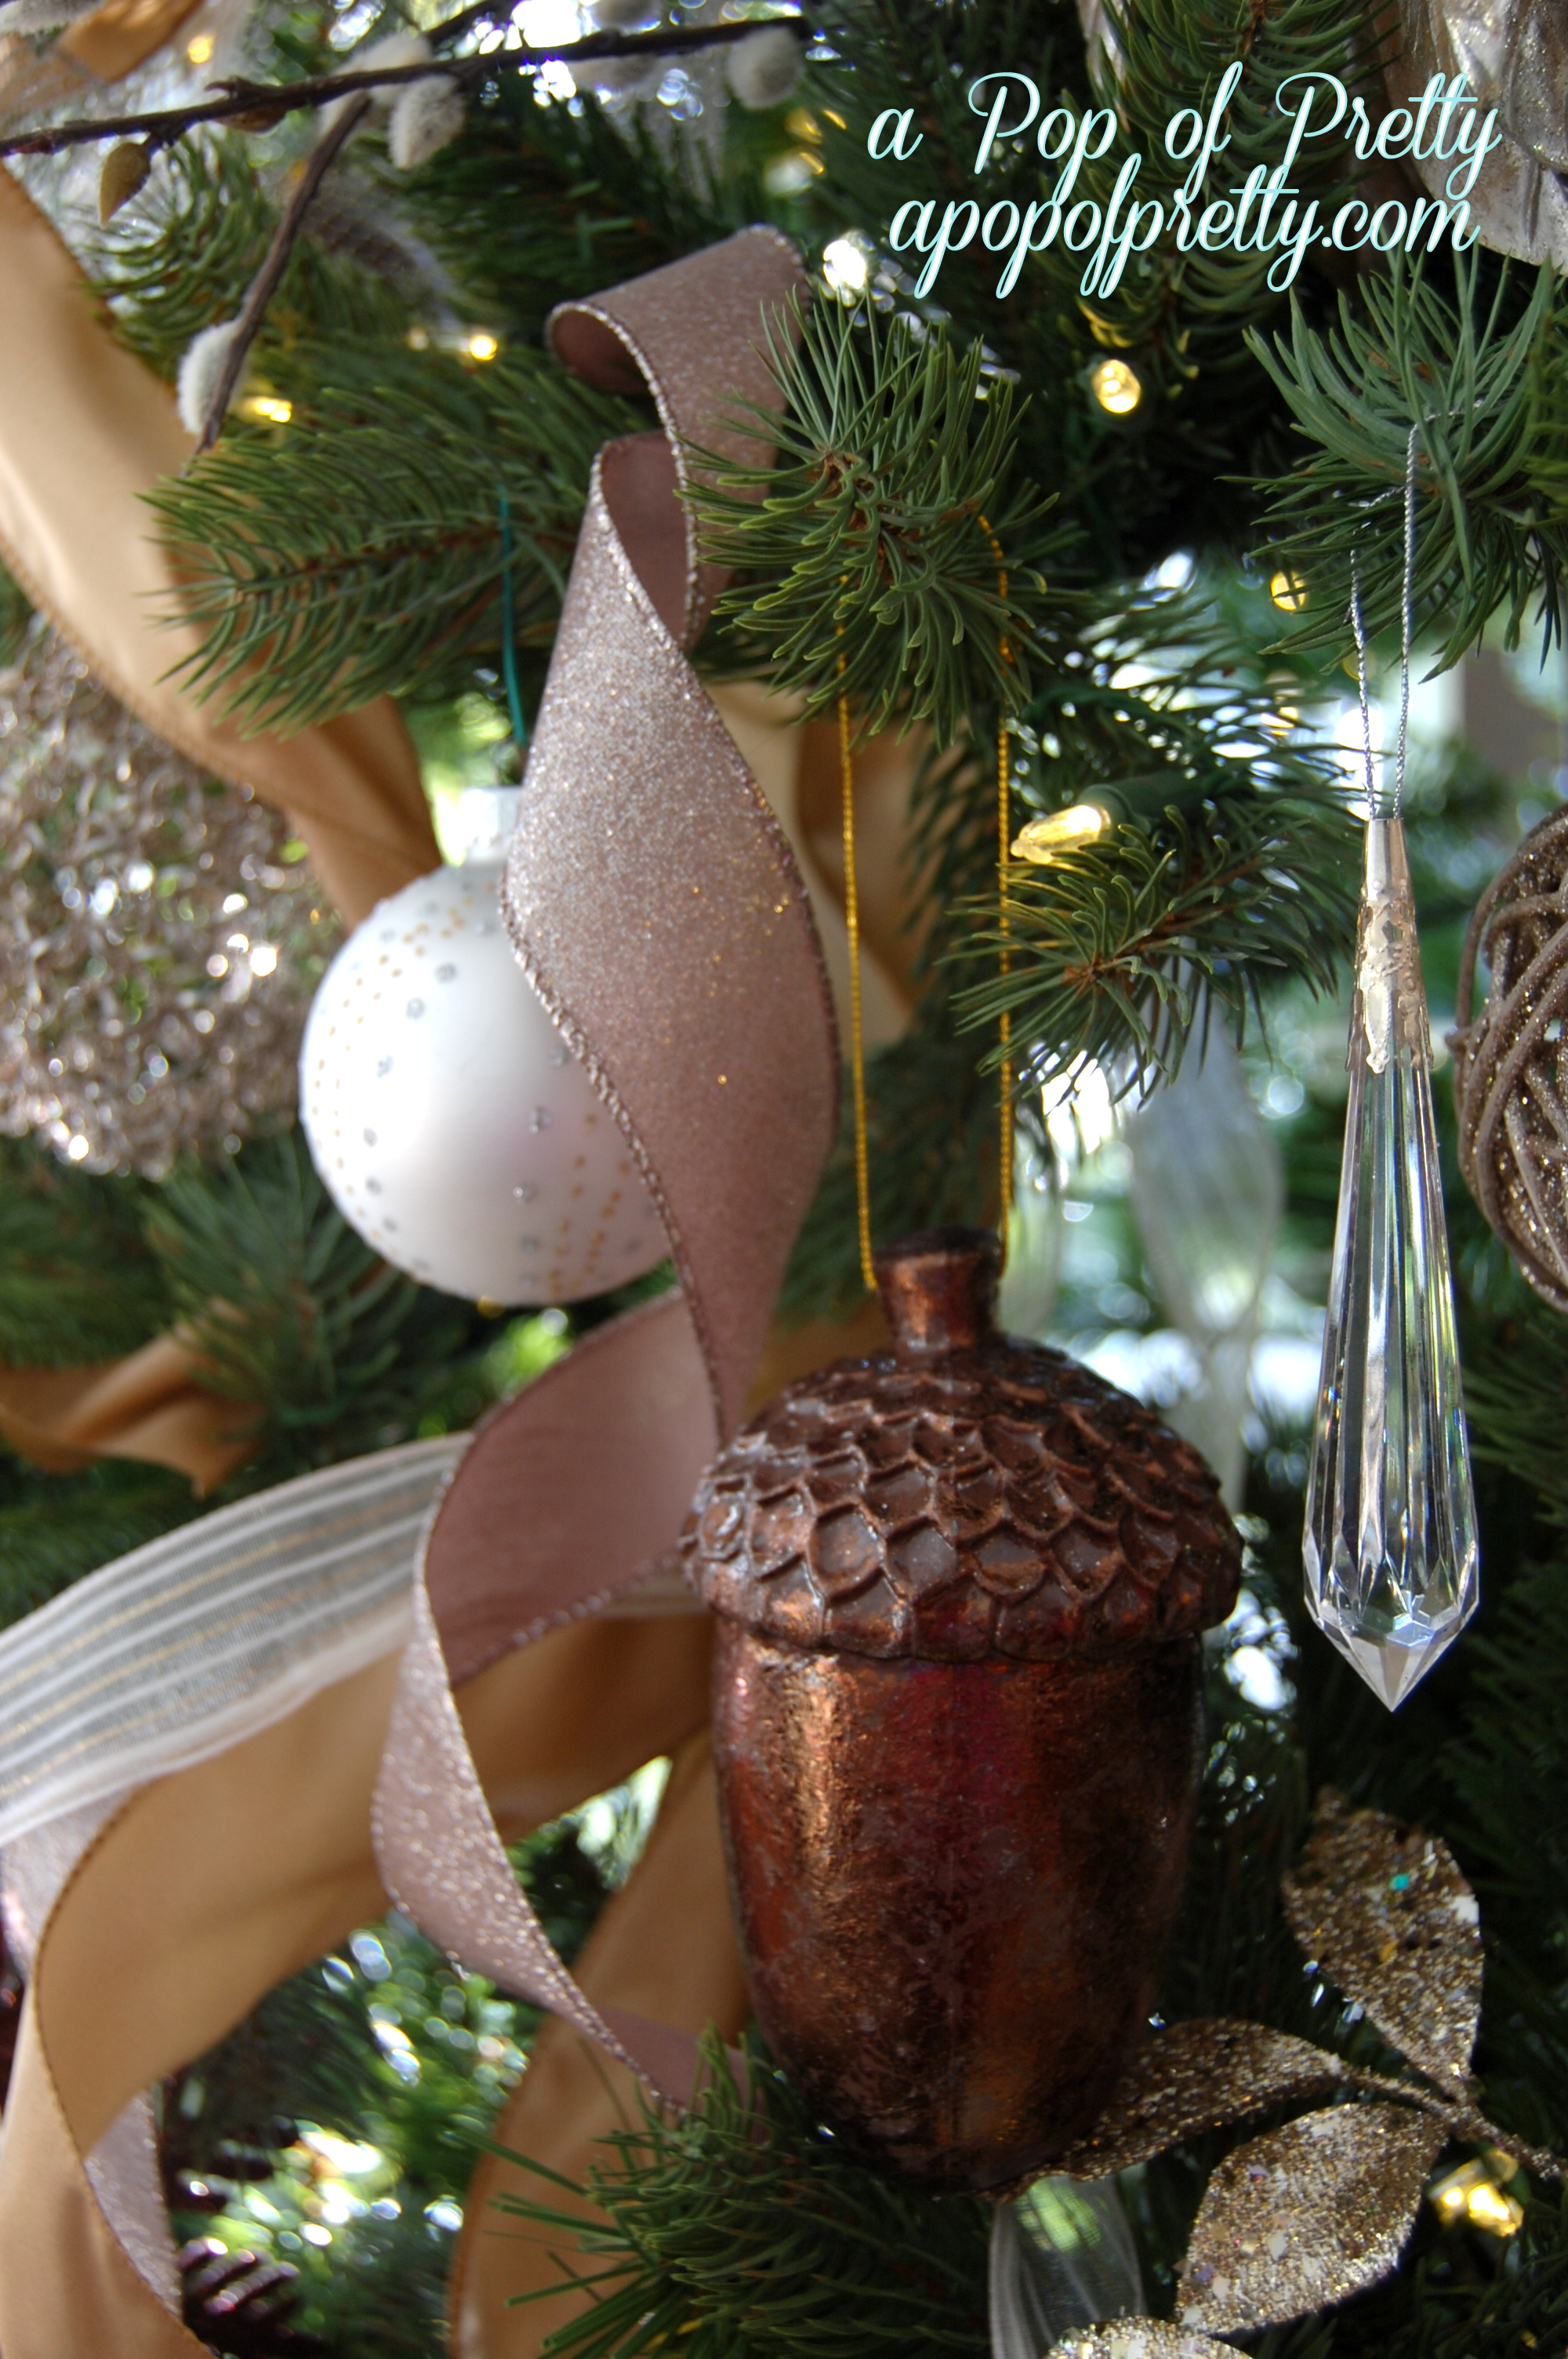 Christmas decorating tips - A Pop of Pretty: Canadian Decorating Blog ...